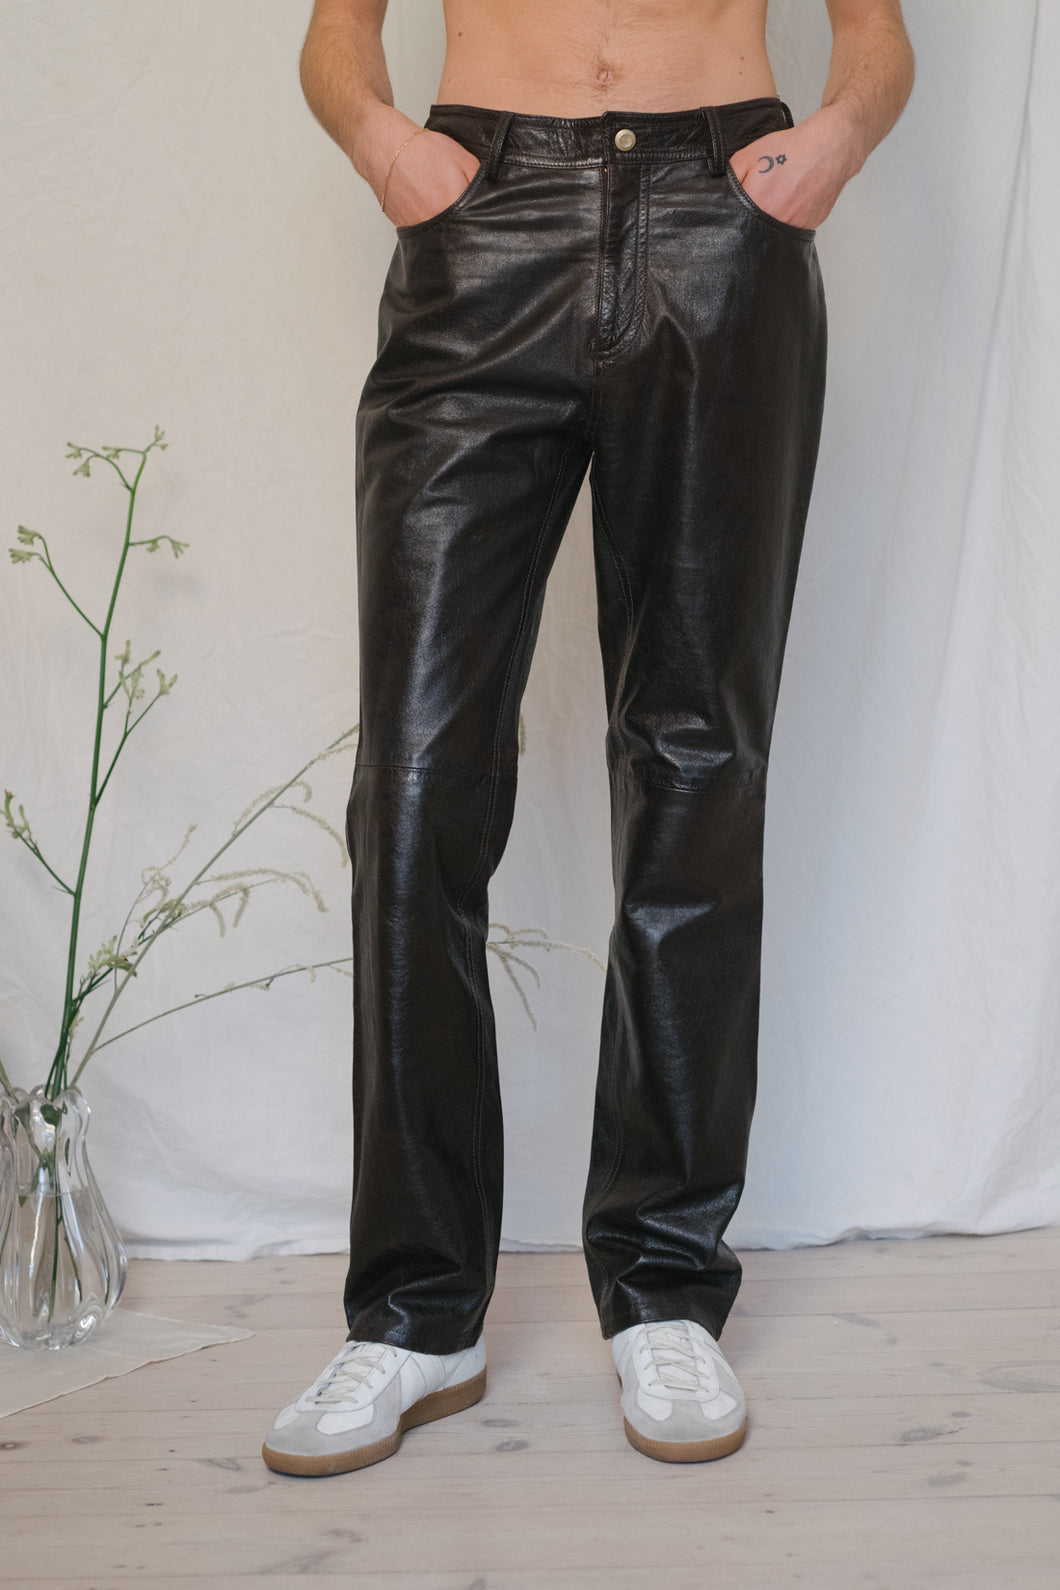 Trussardi Dark Brown Leather Pants - Studio Travel